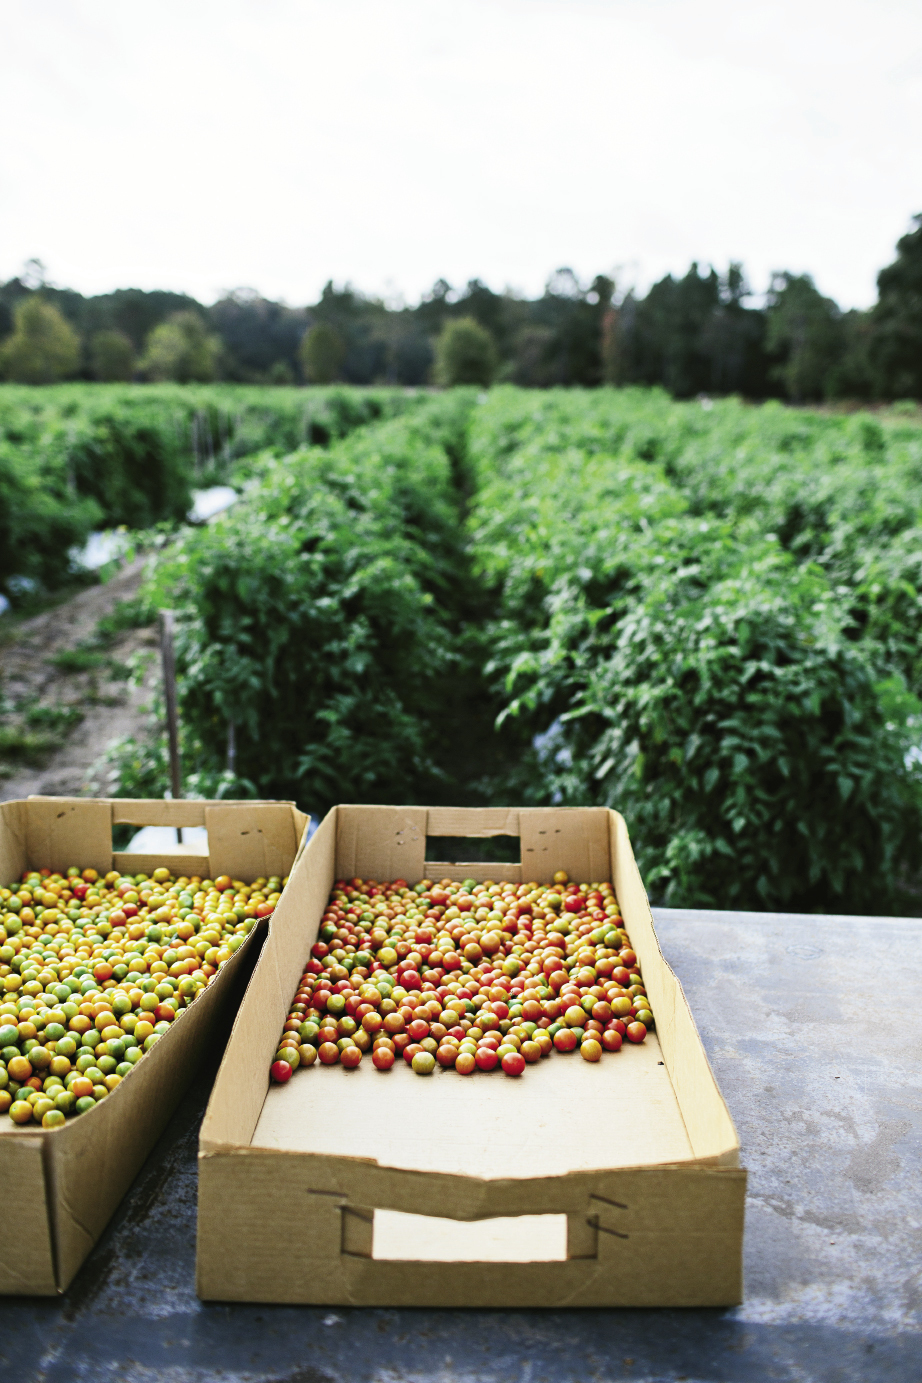 """Shawn Thackeray has been growing his signature—and aptly named—""""Wadmalaw Fuglies"""" at his farm on the island for 12 years. These are picked green for shipping to supermarket shelves. But don't let their scarred looks fool you: Fuglies have a mild, sweet flavor and are well-balanced with acidity. Thackeray also produces a bounty of other tomatoes, including these colorful heirloom cherries."""